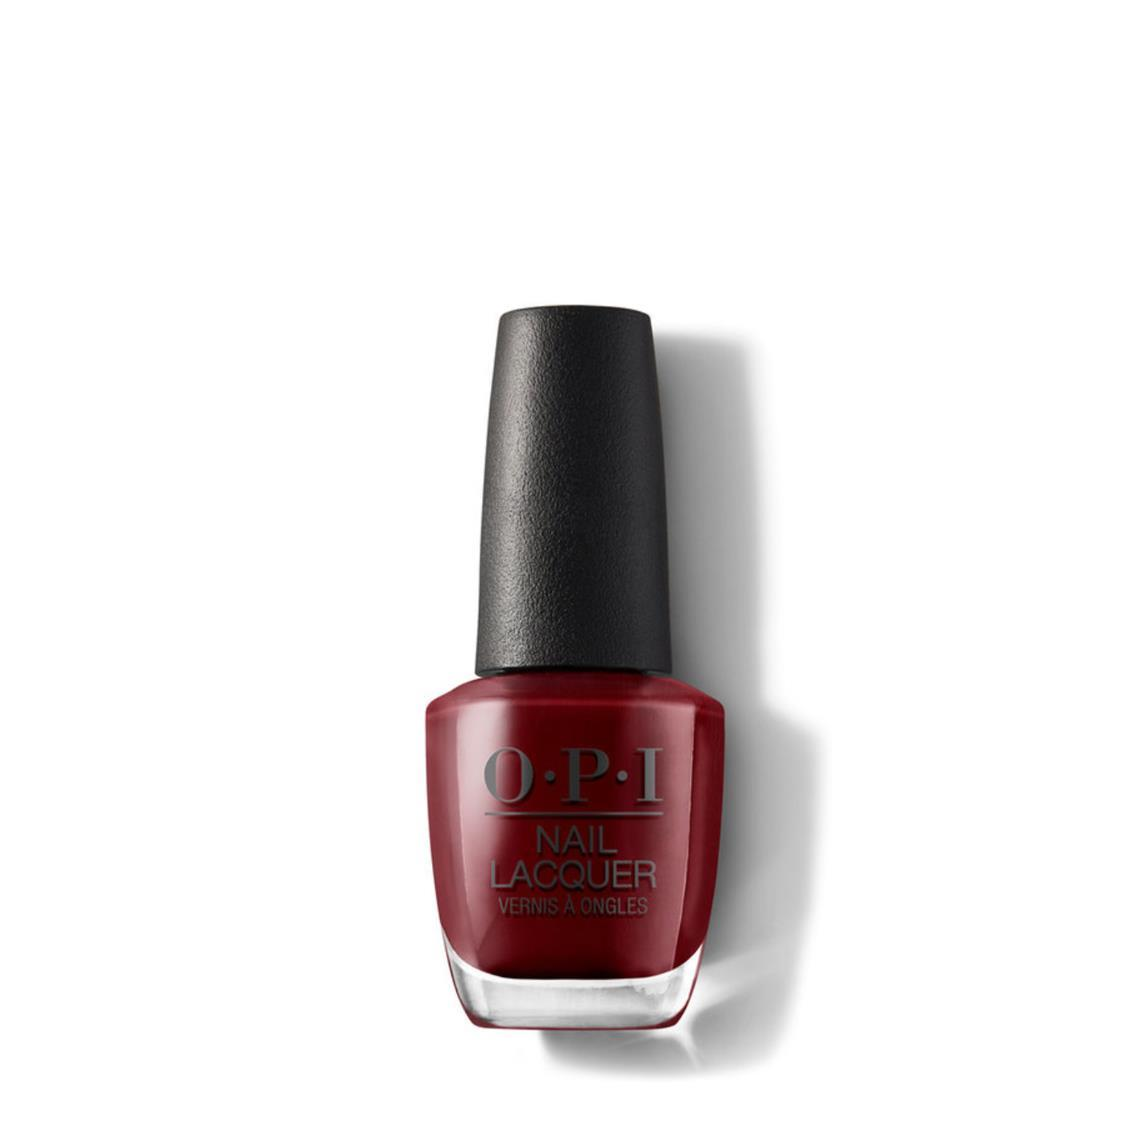 Opi Fall Collection 2018 Nail Lacquer Como Se Llama 15ml